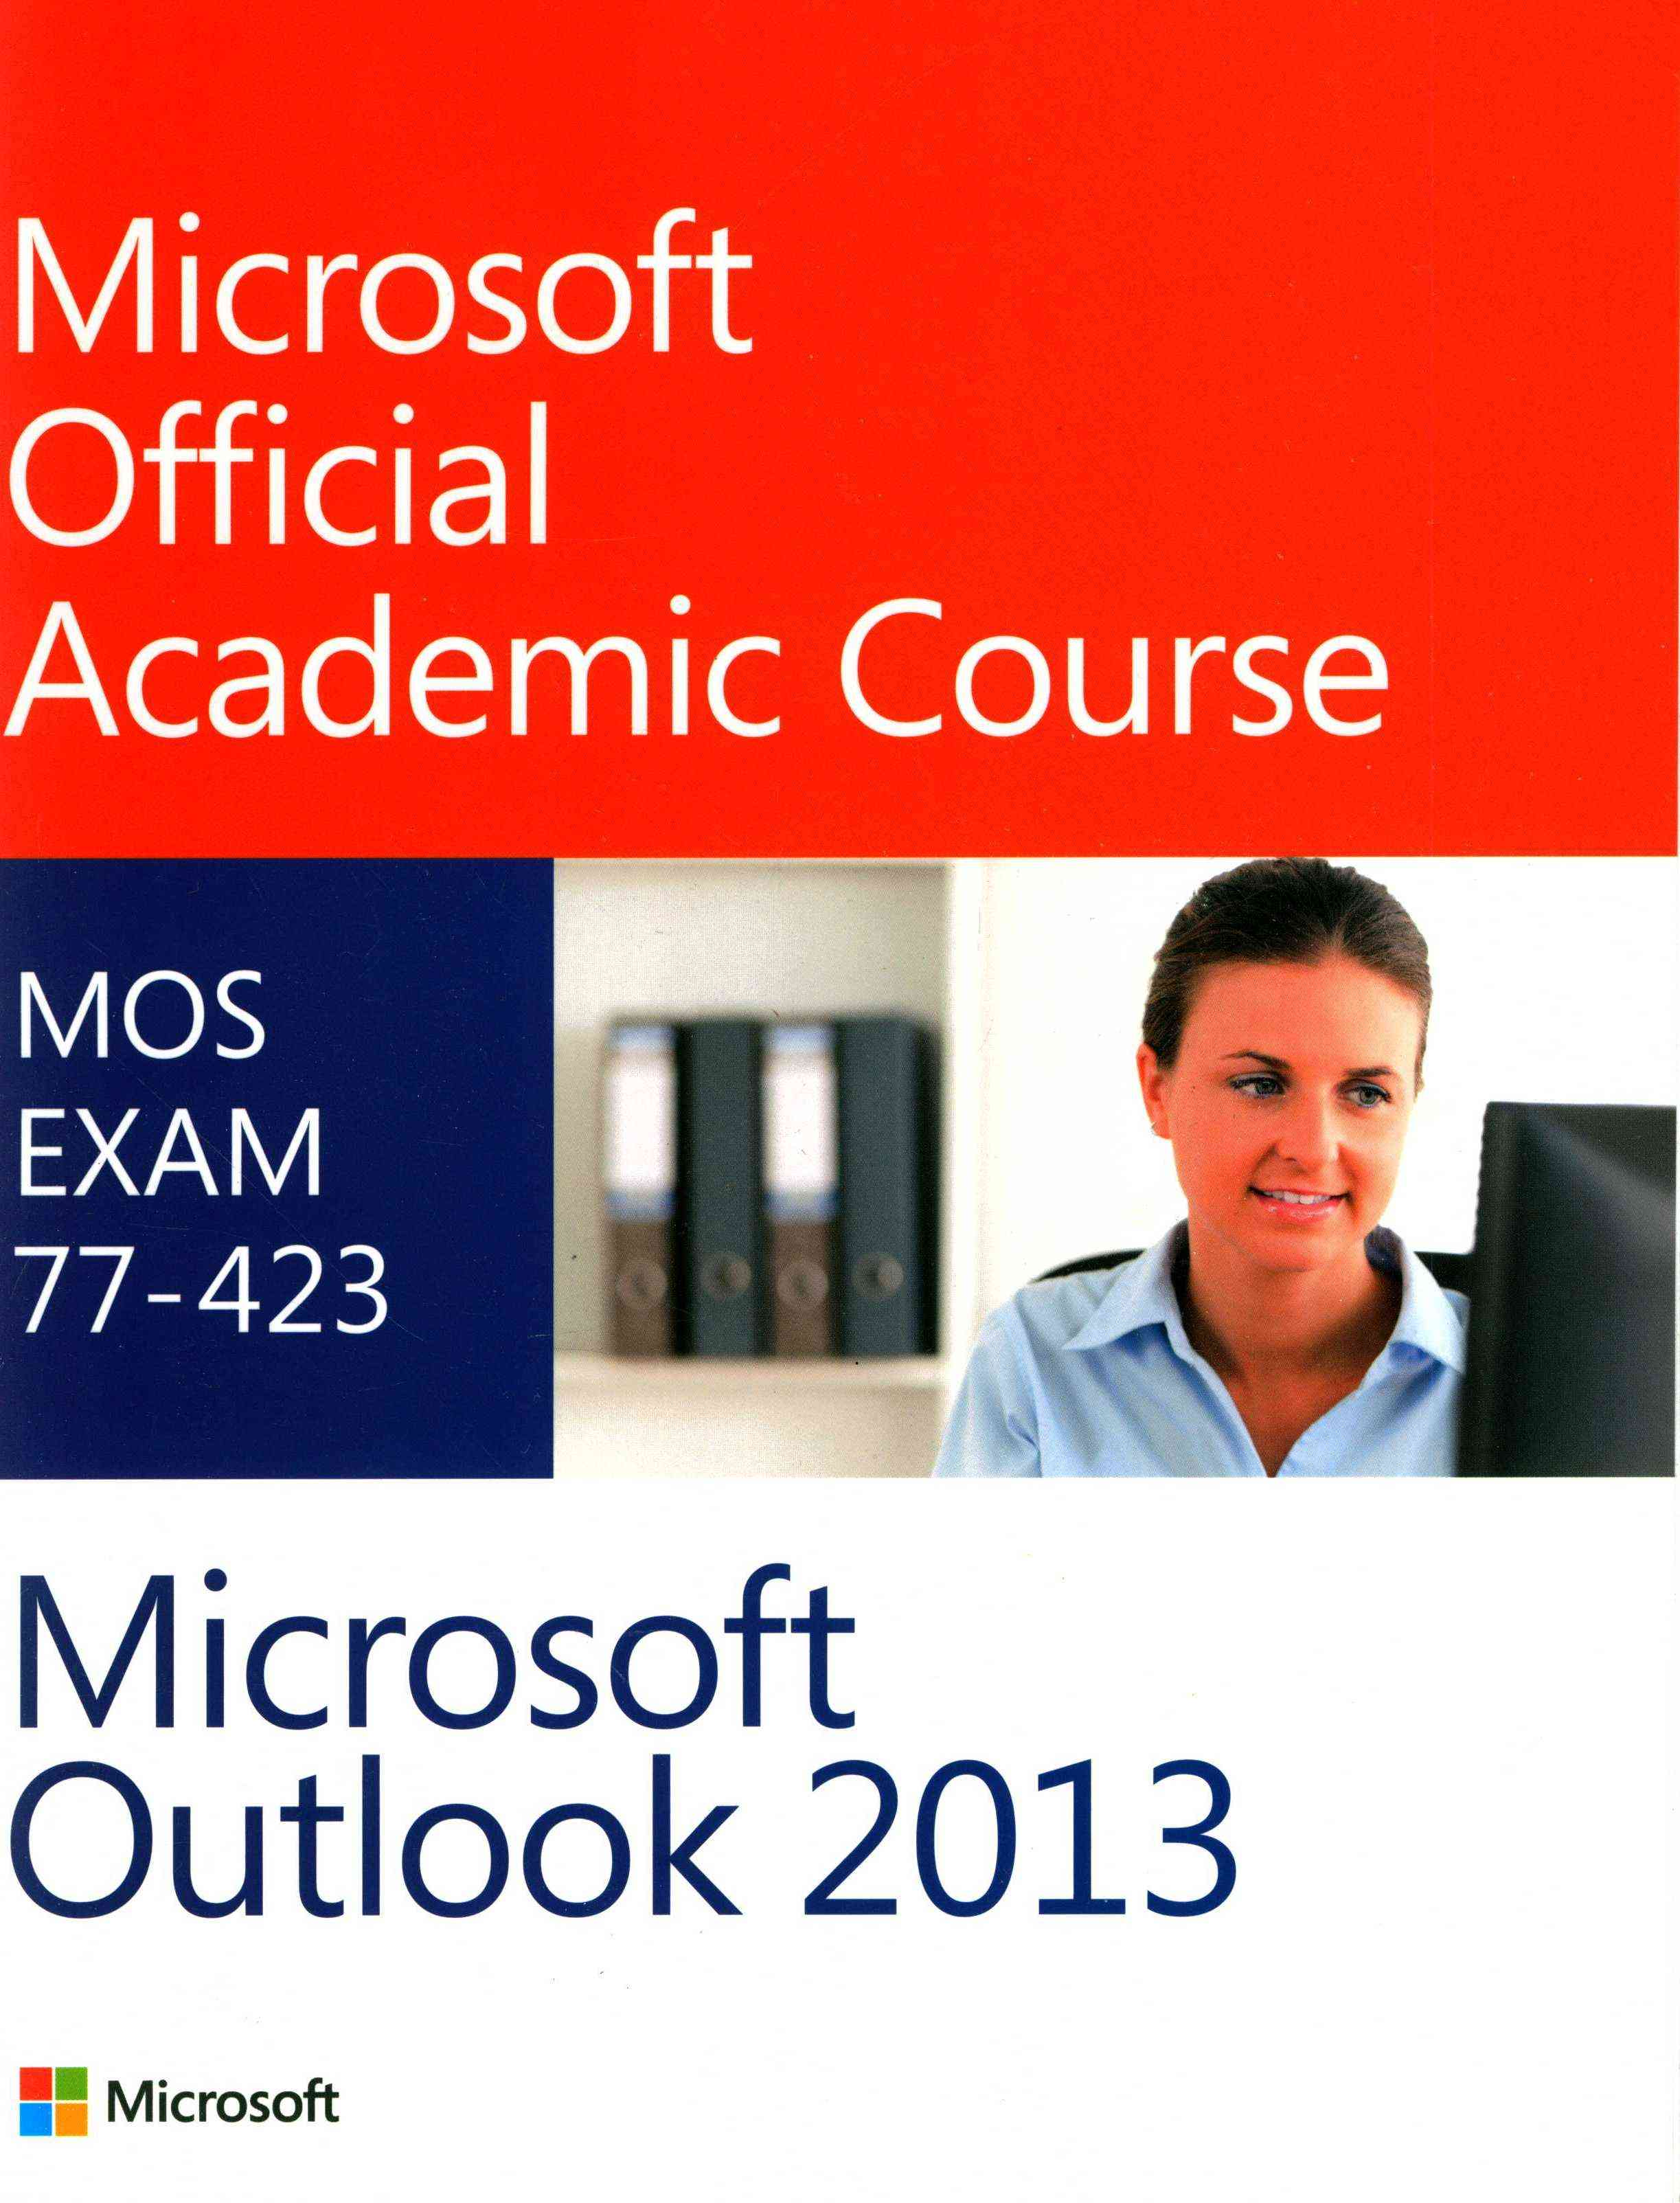 Microsoft Outlook 13 By Microsoft Official Academic Course (COR)